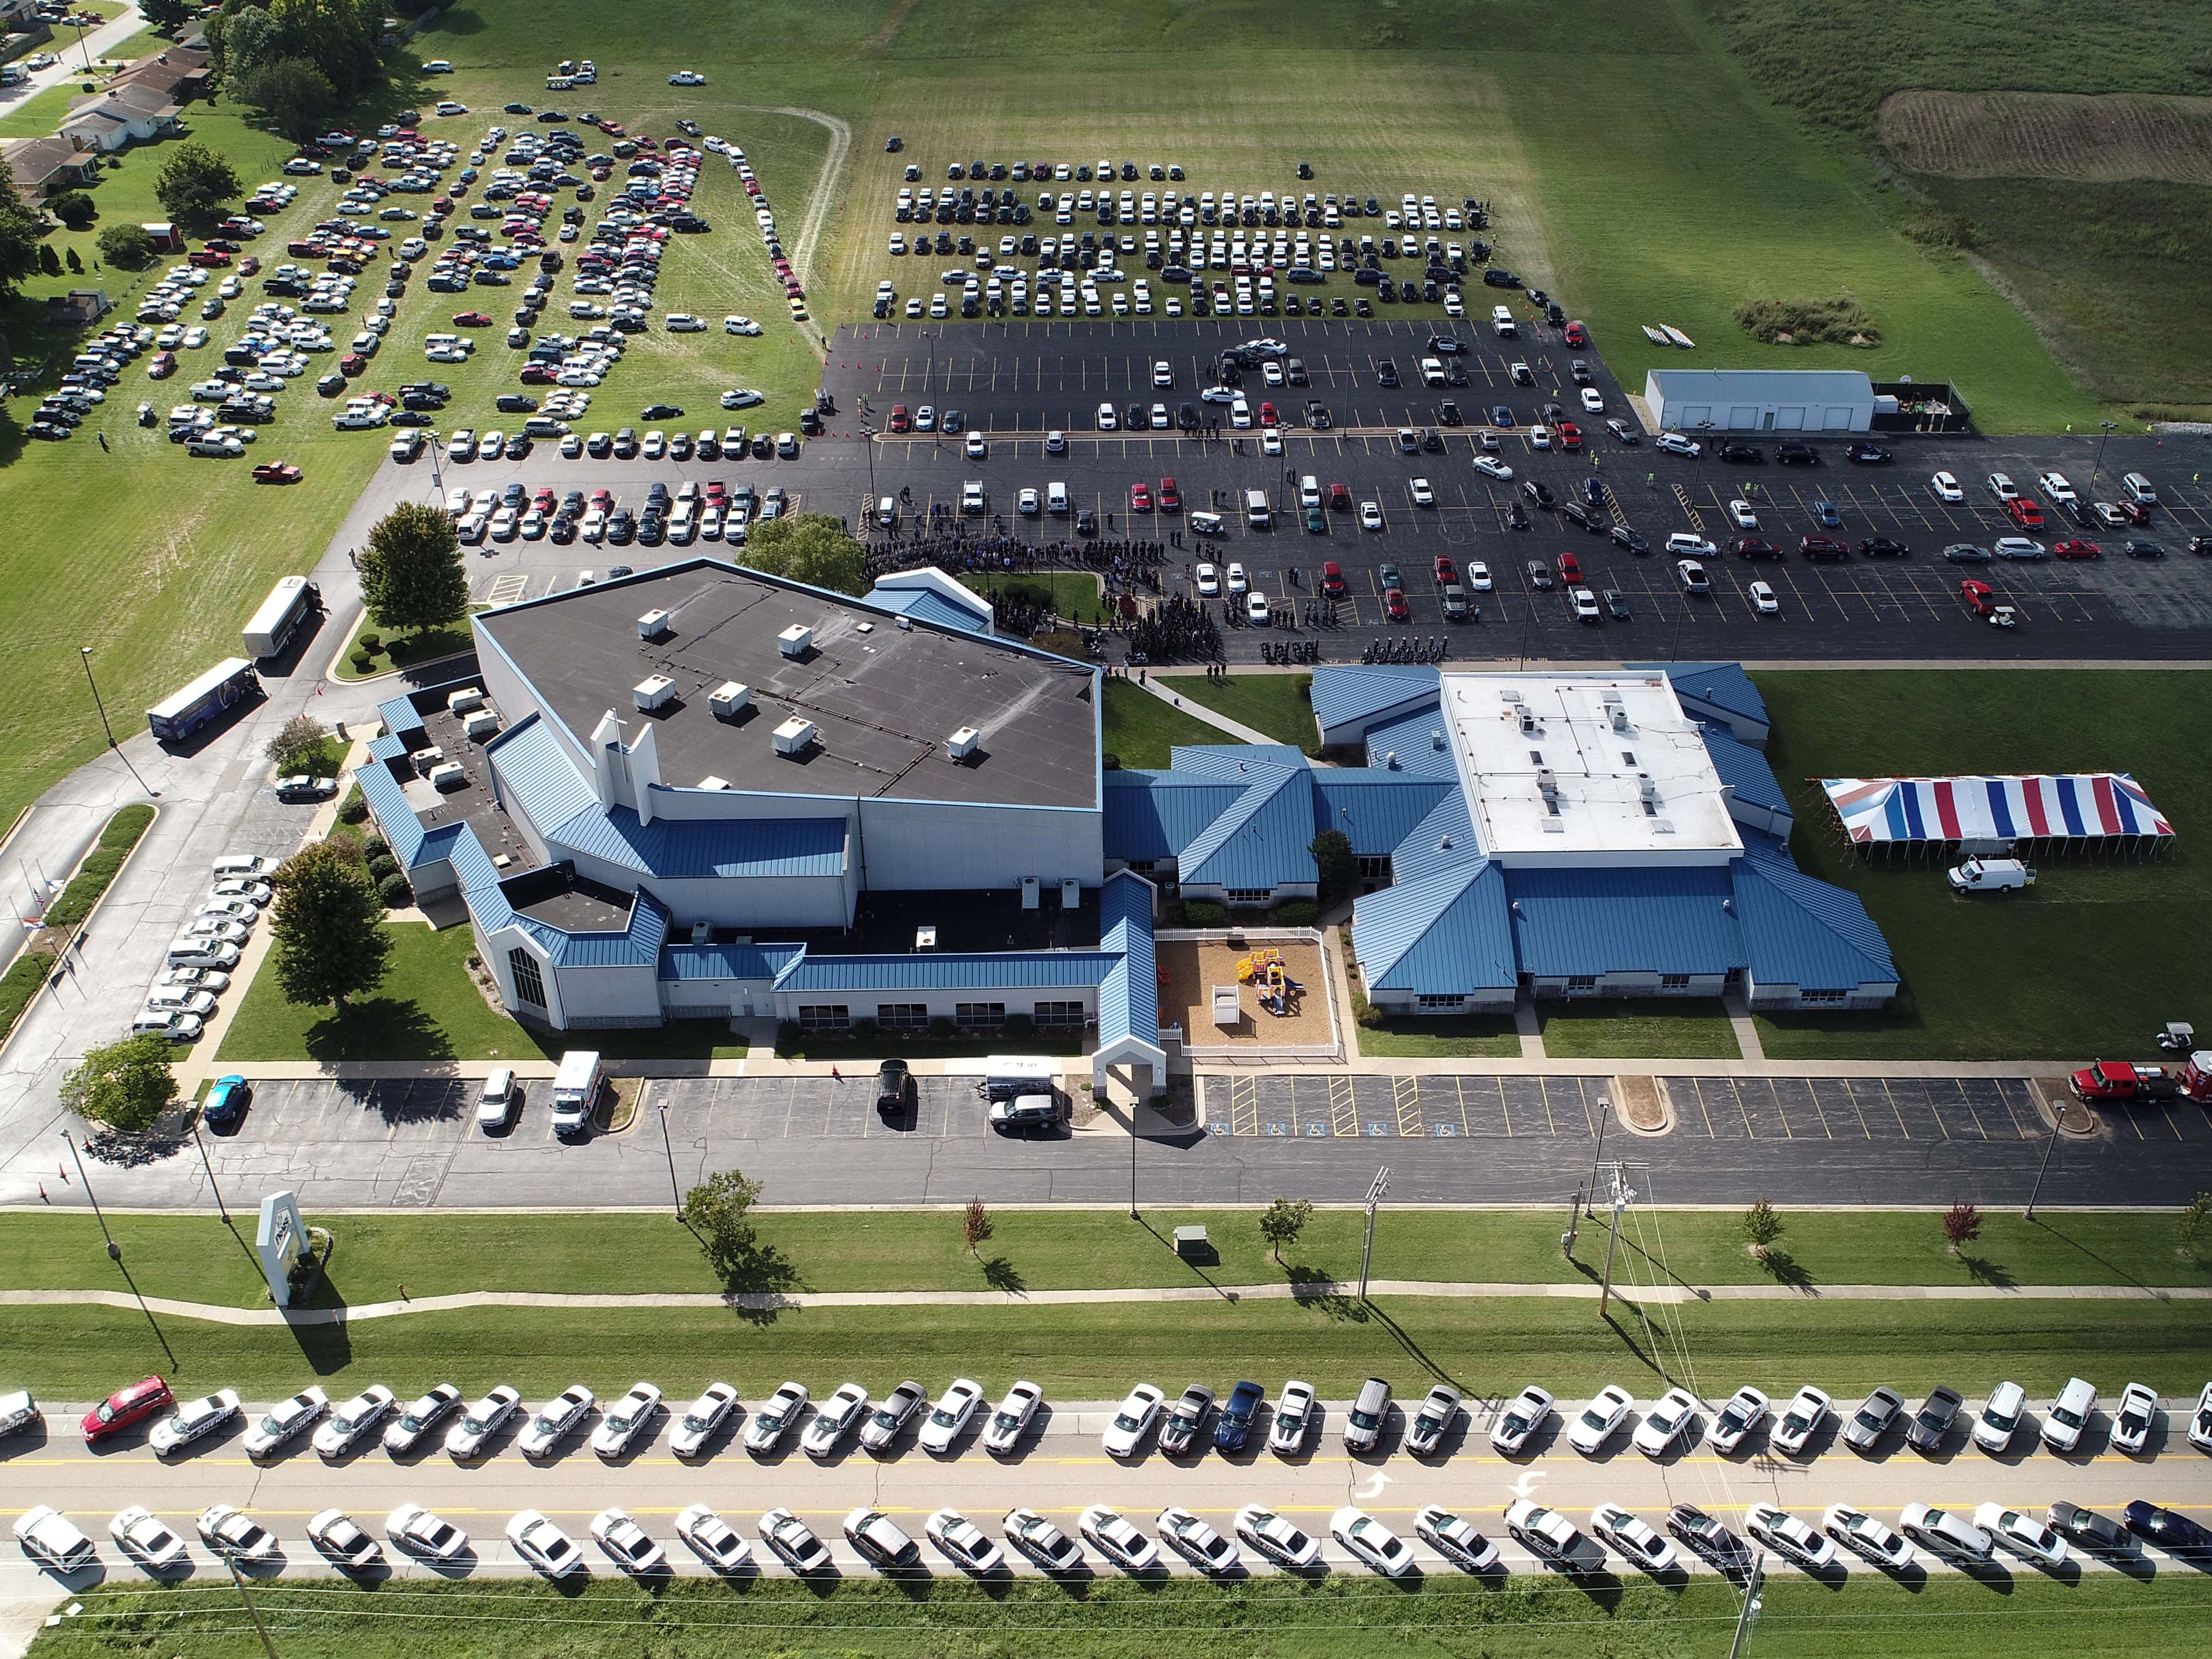 An aerial view of the church during Deputy Roberts' funeral.